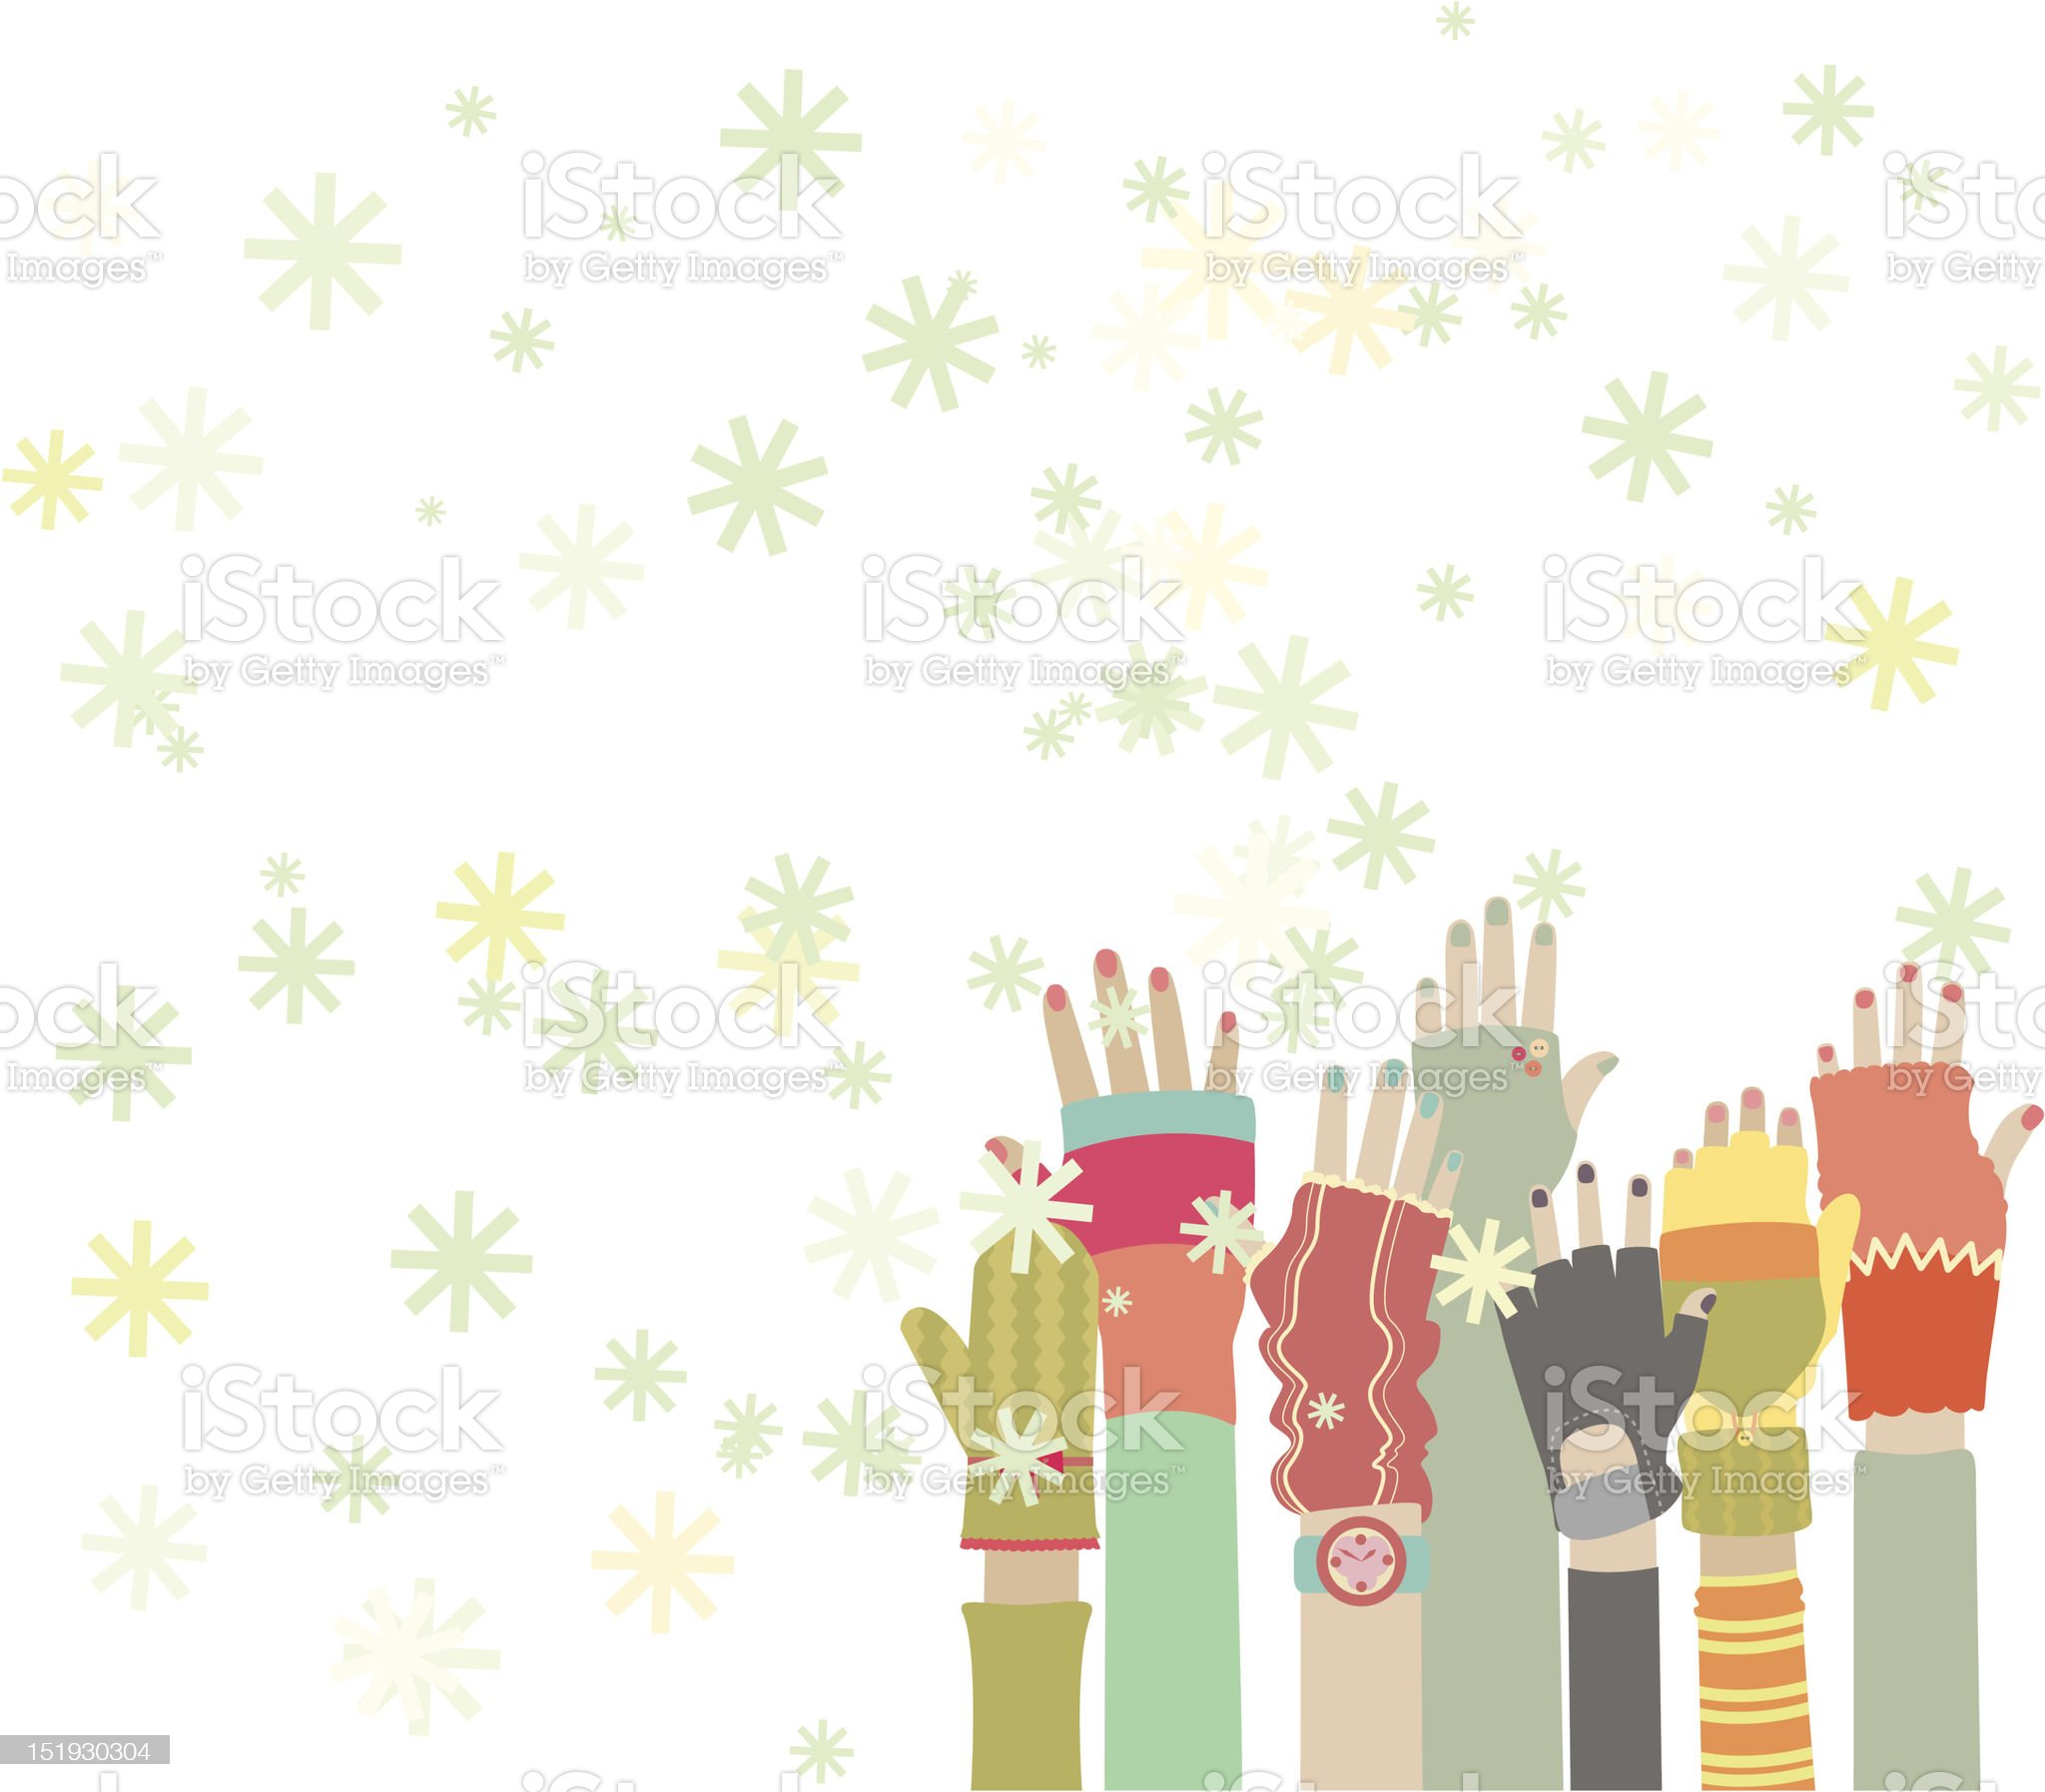 Catching snowflakes royalty-free stock vector art